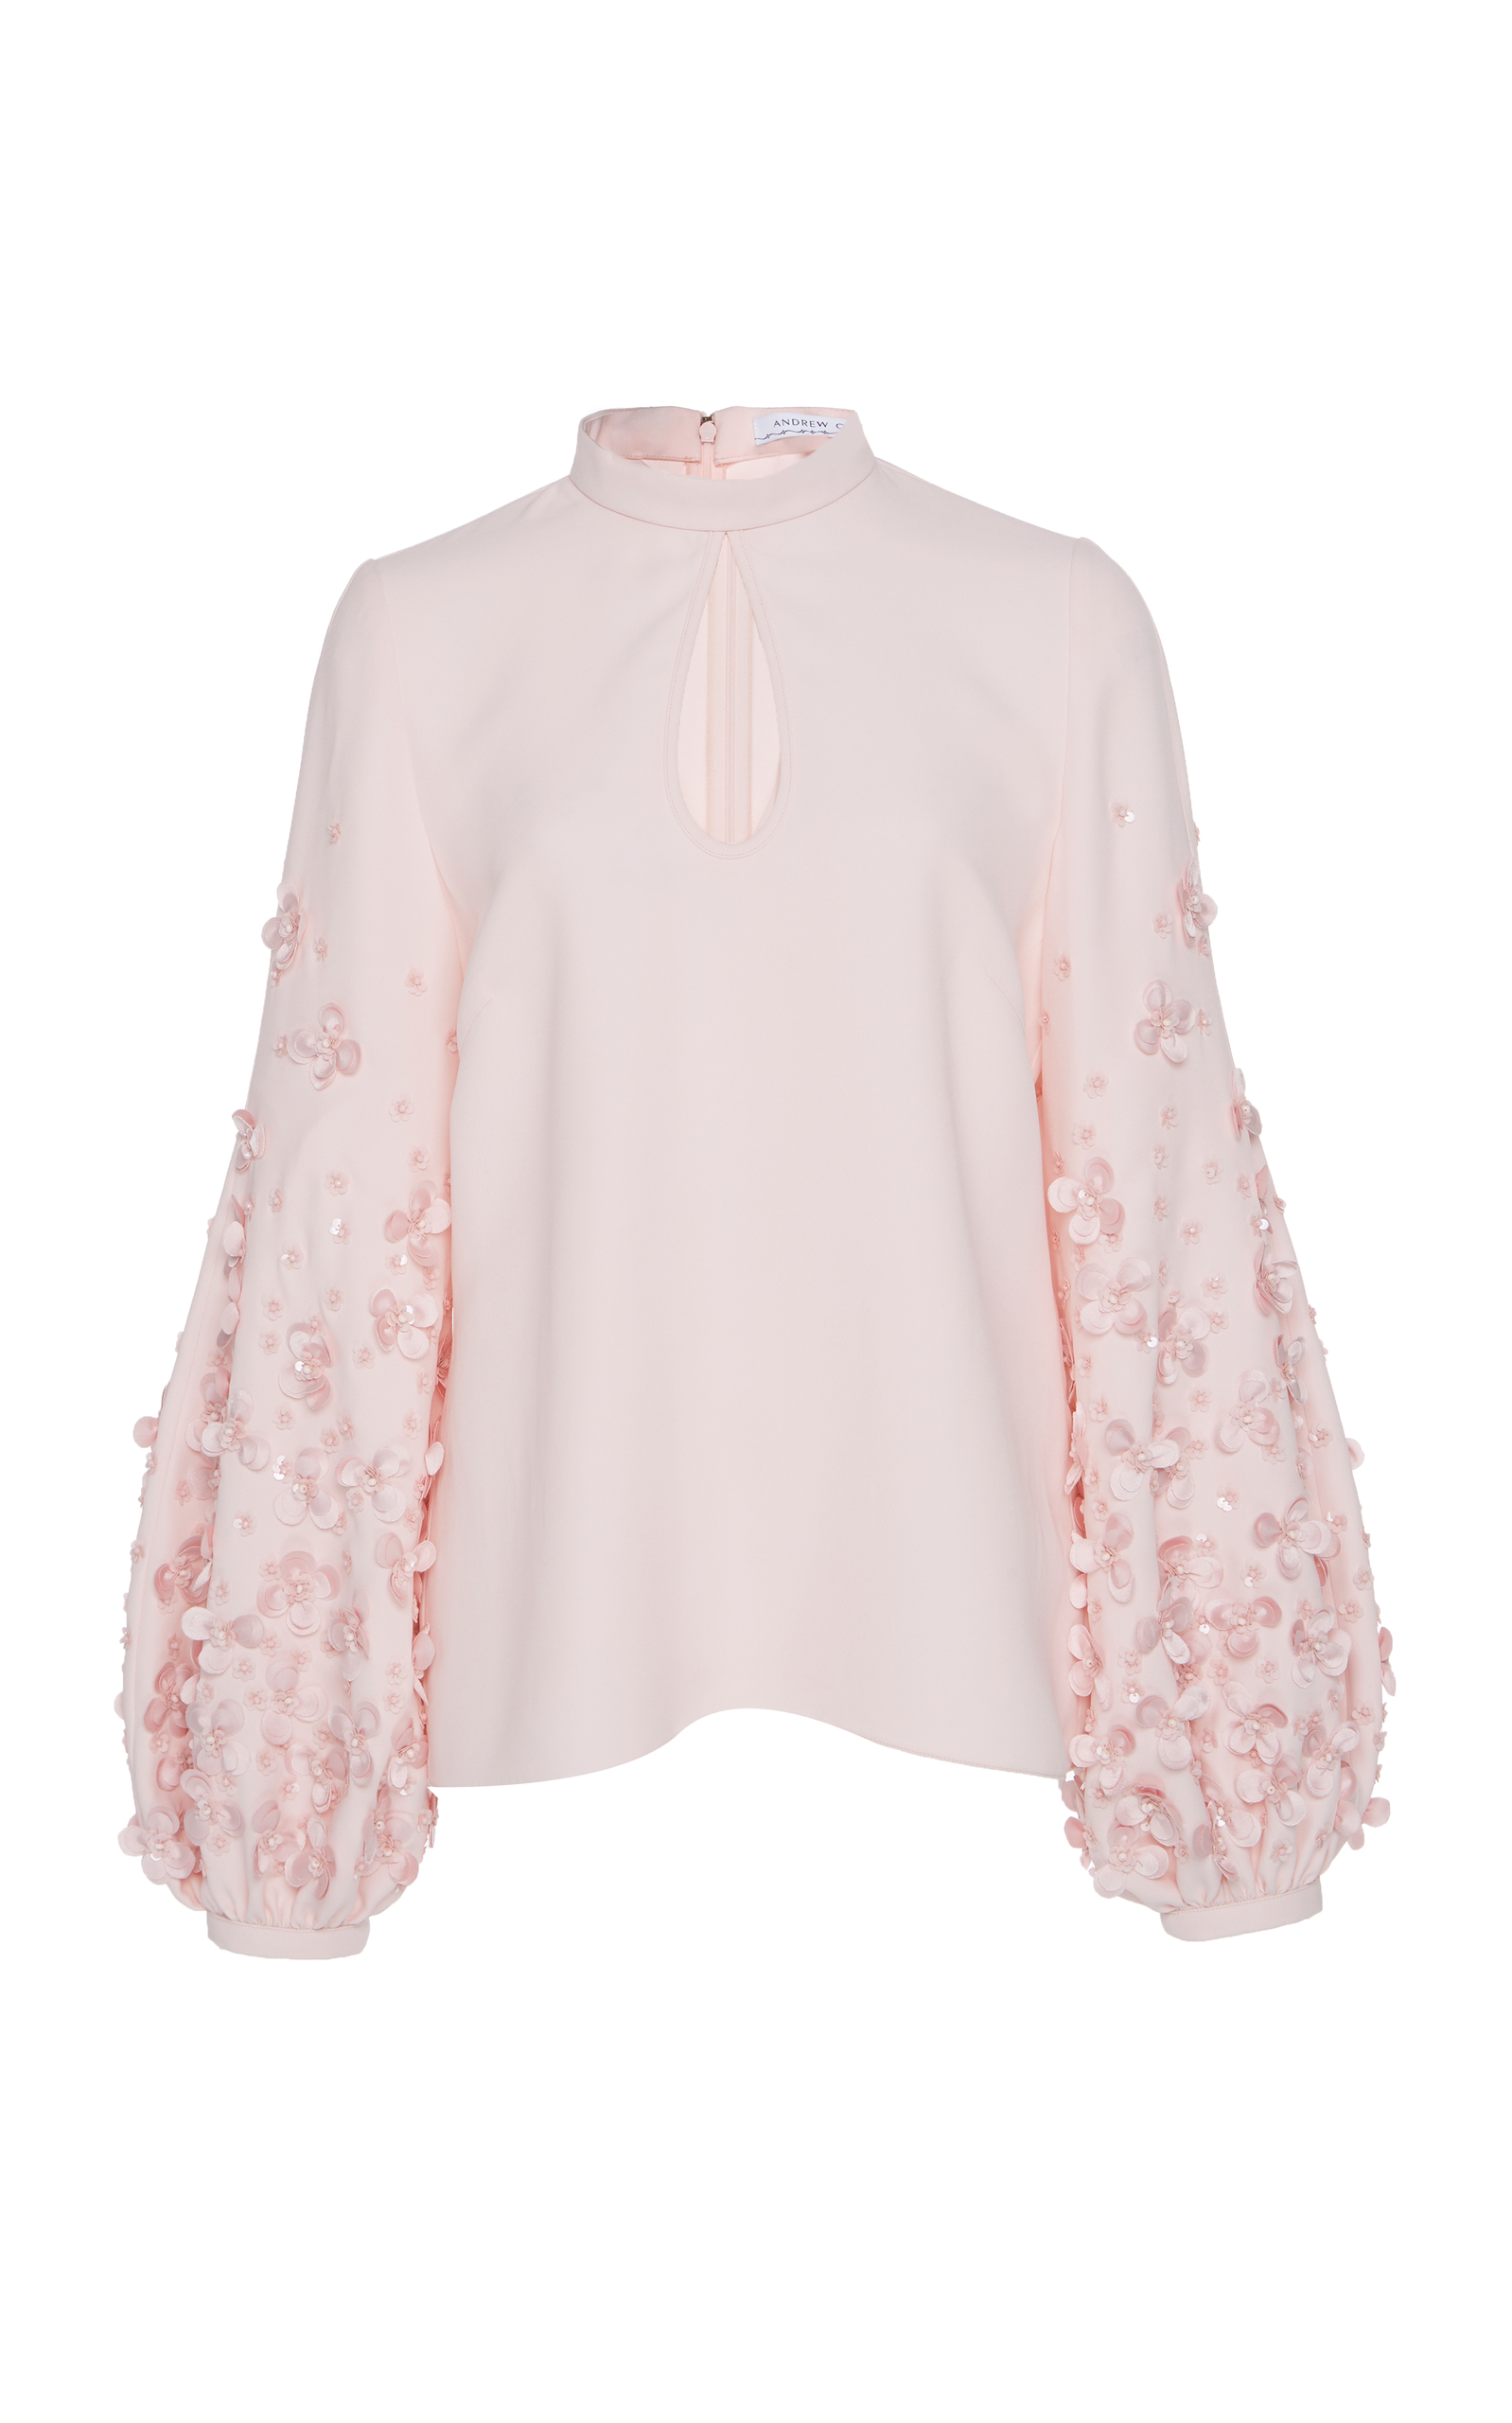 Poof Sleeve Top Andrew Gn Sale Store OXs9RKunD1